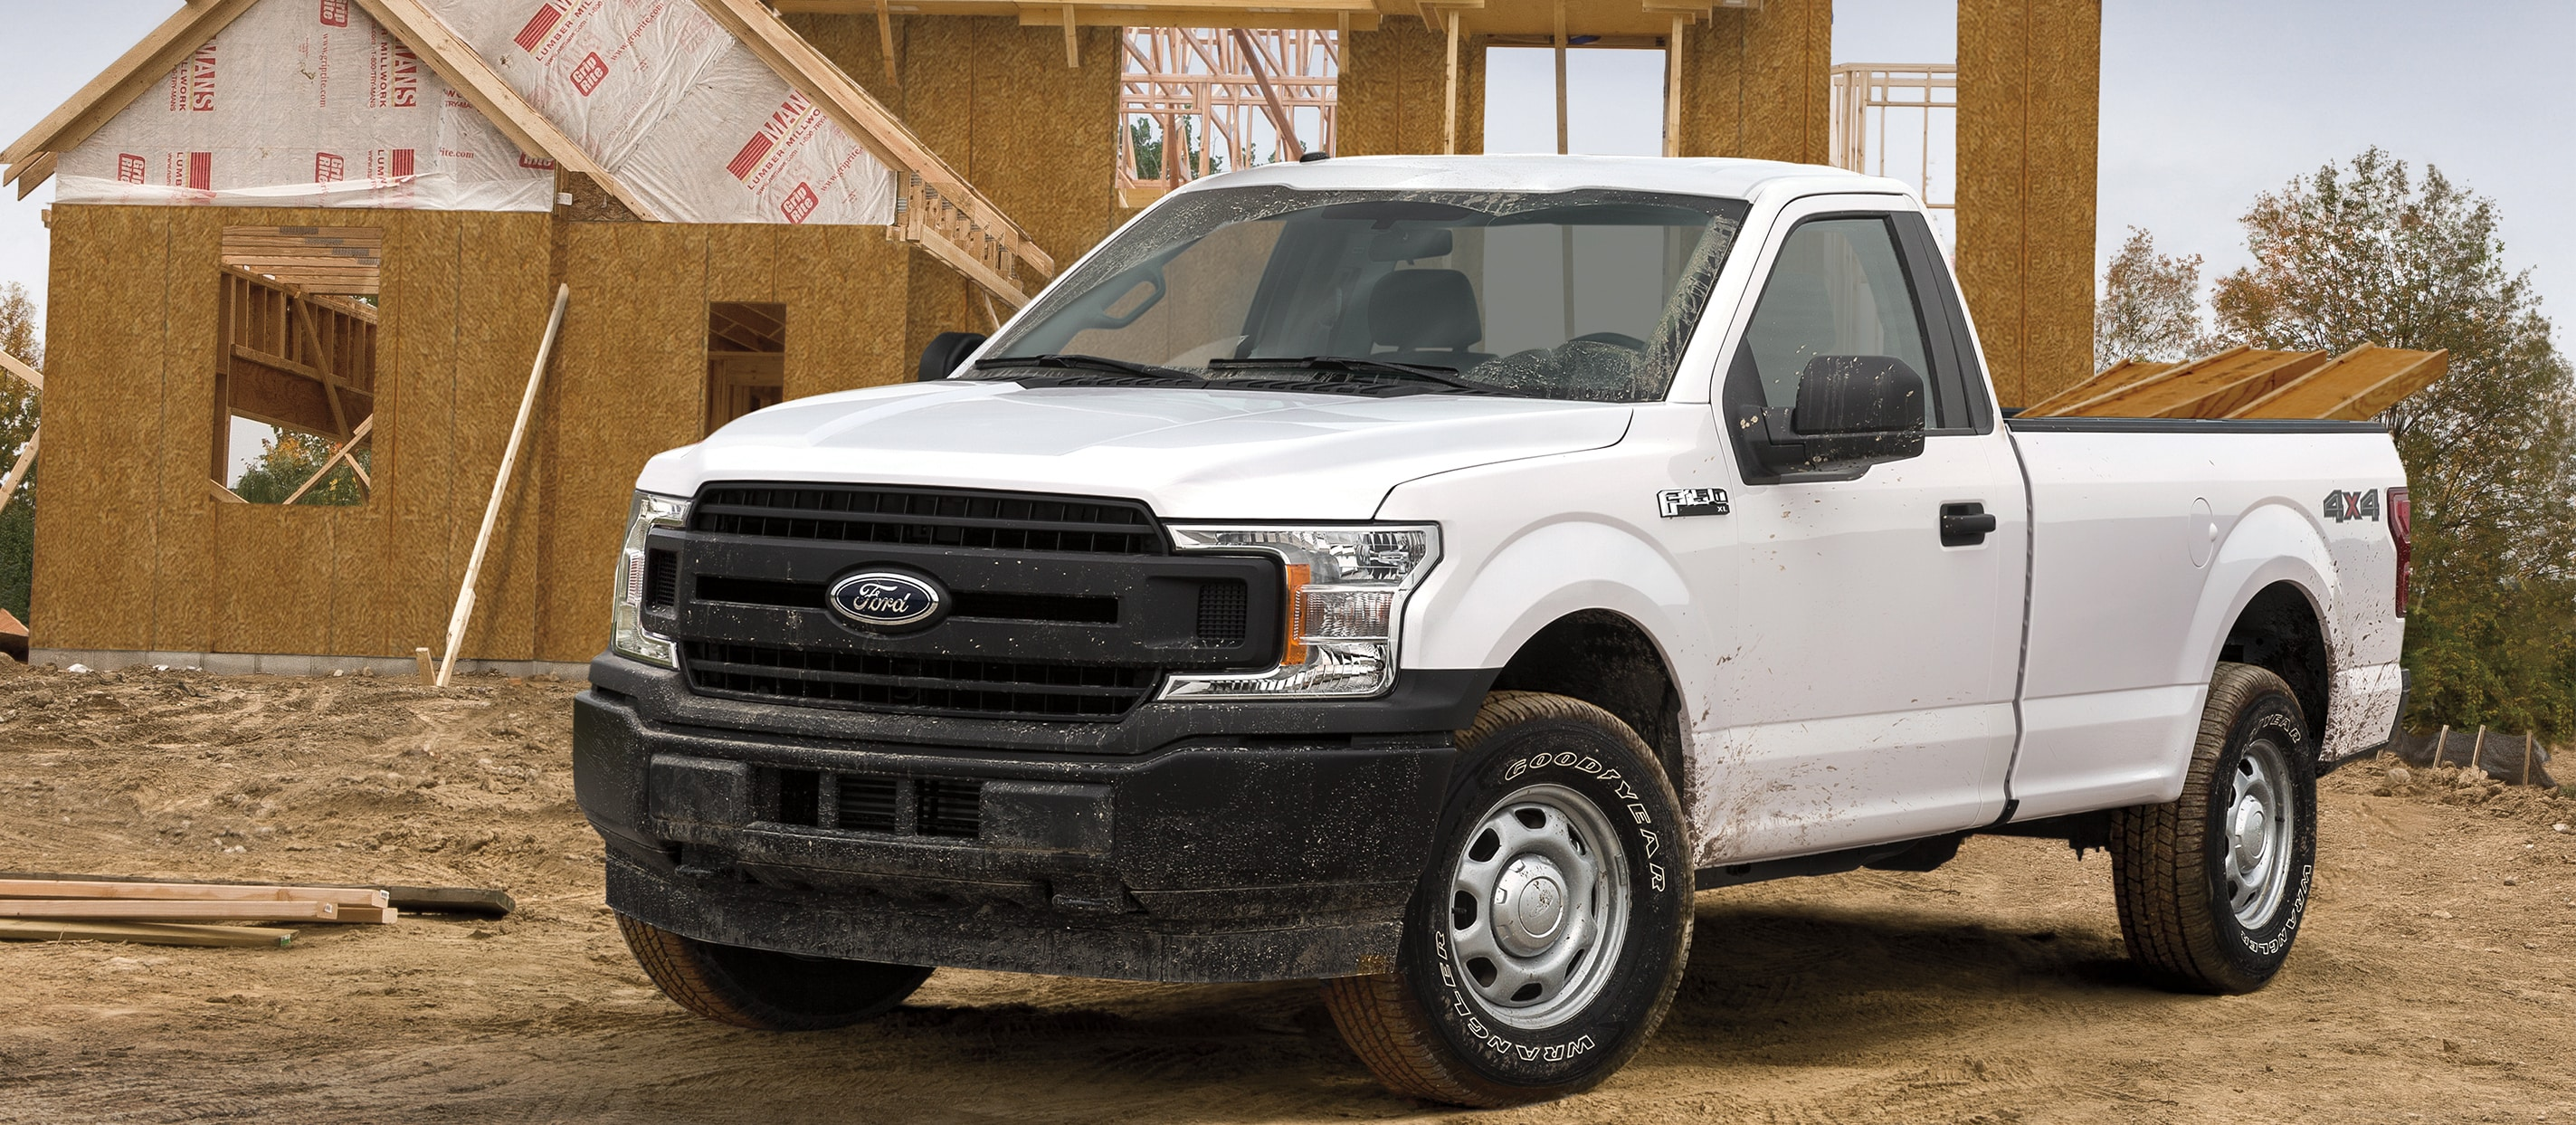 Ford F-150 Work Truck